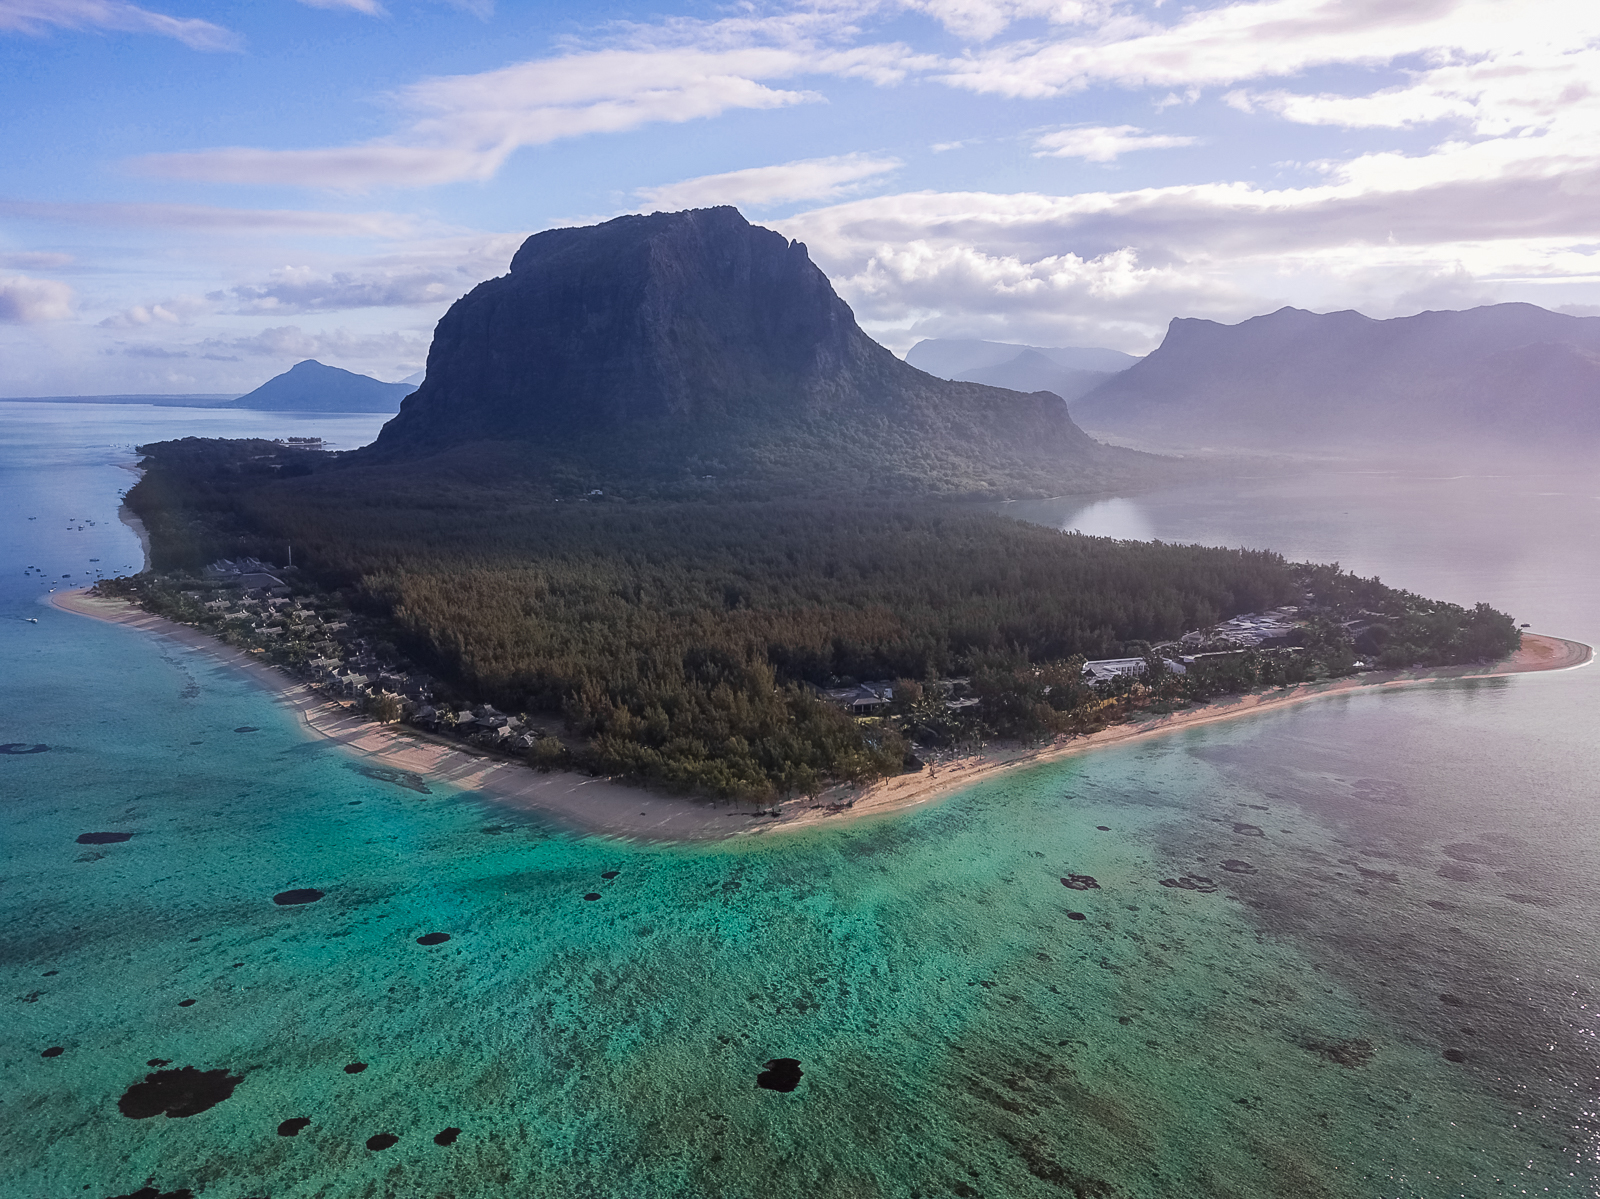 Le Morne Mauritius drone photo